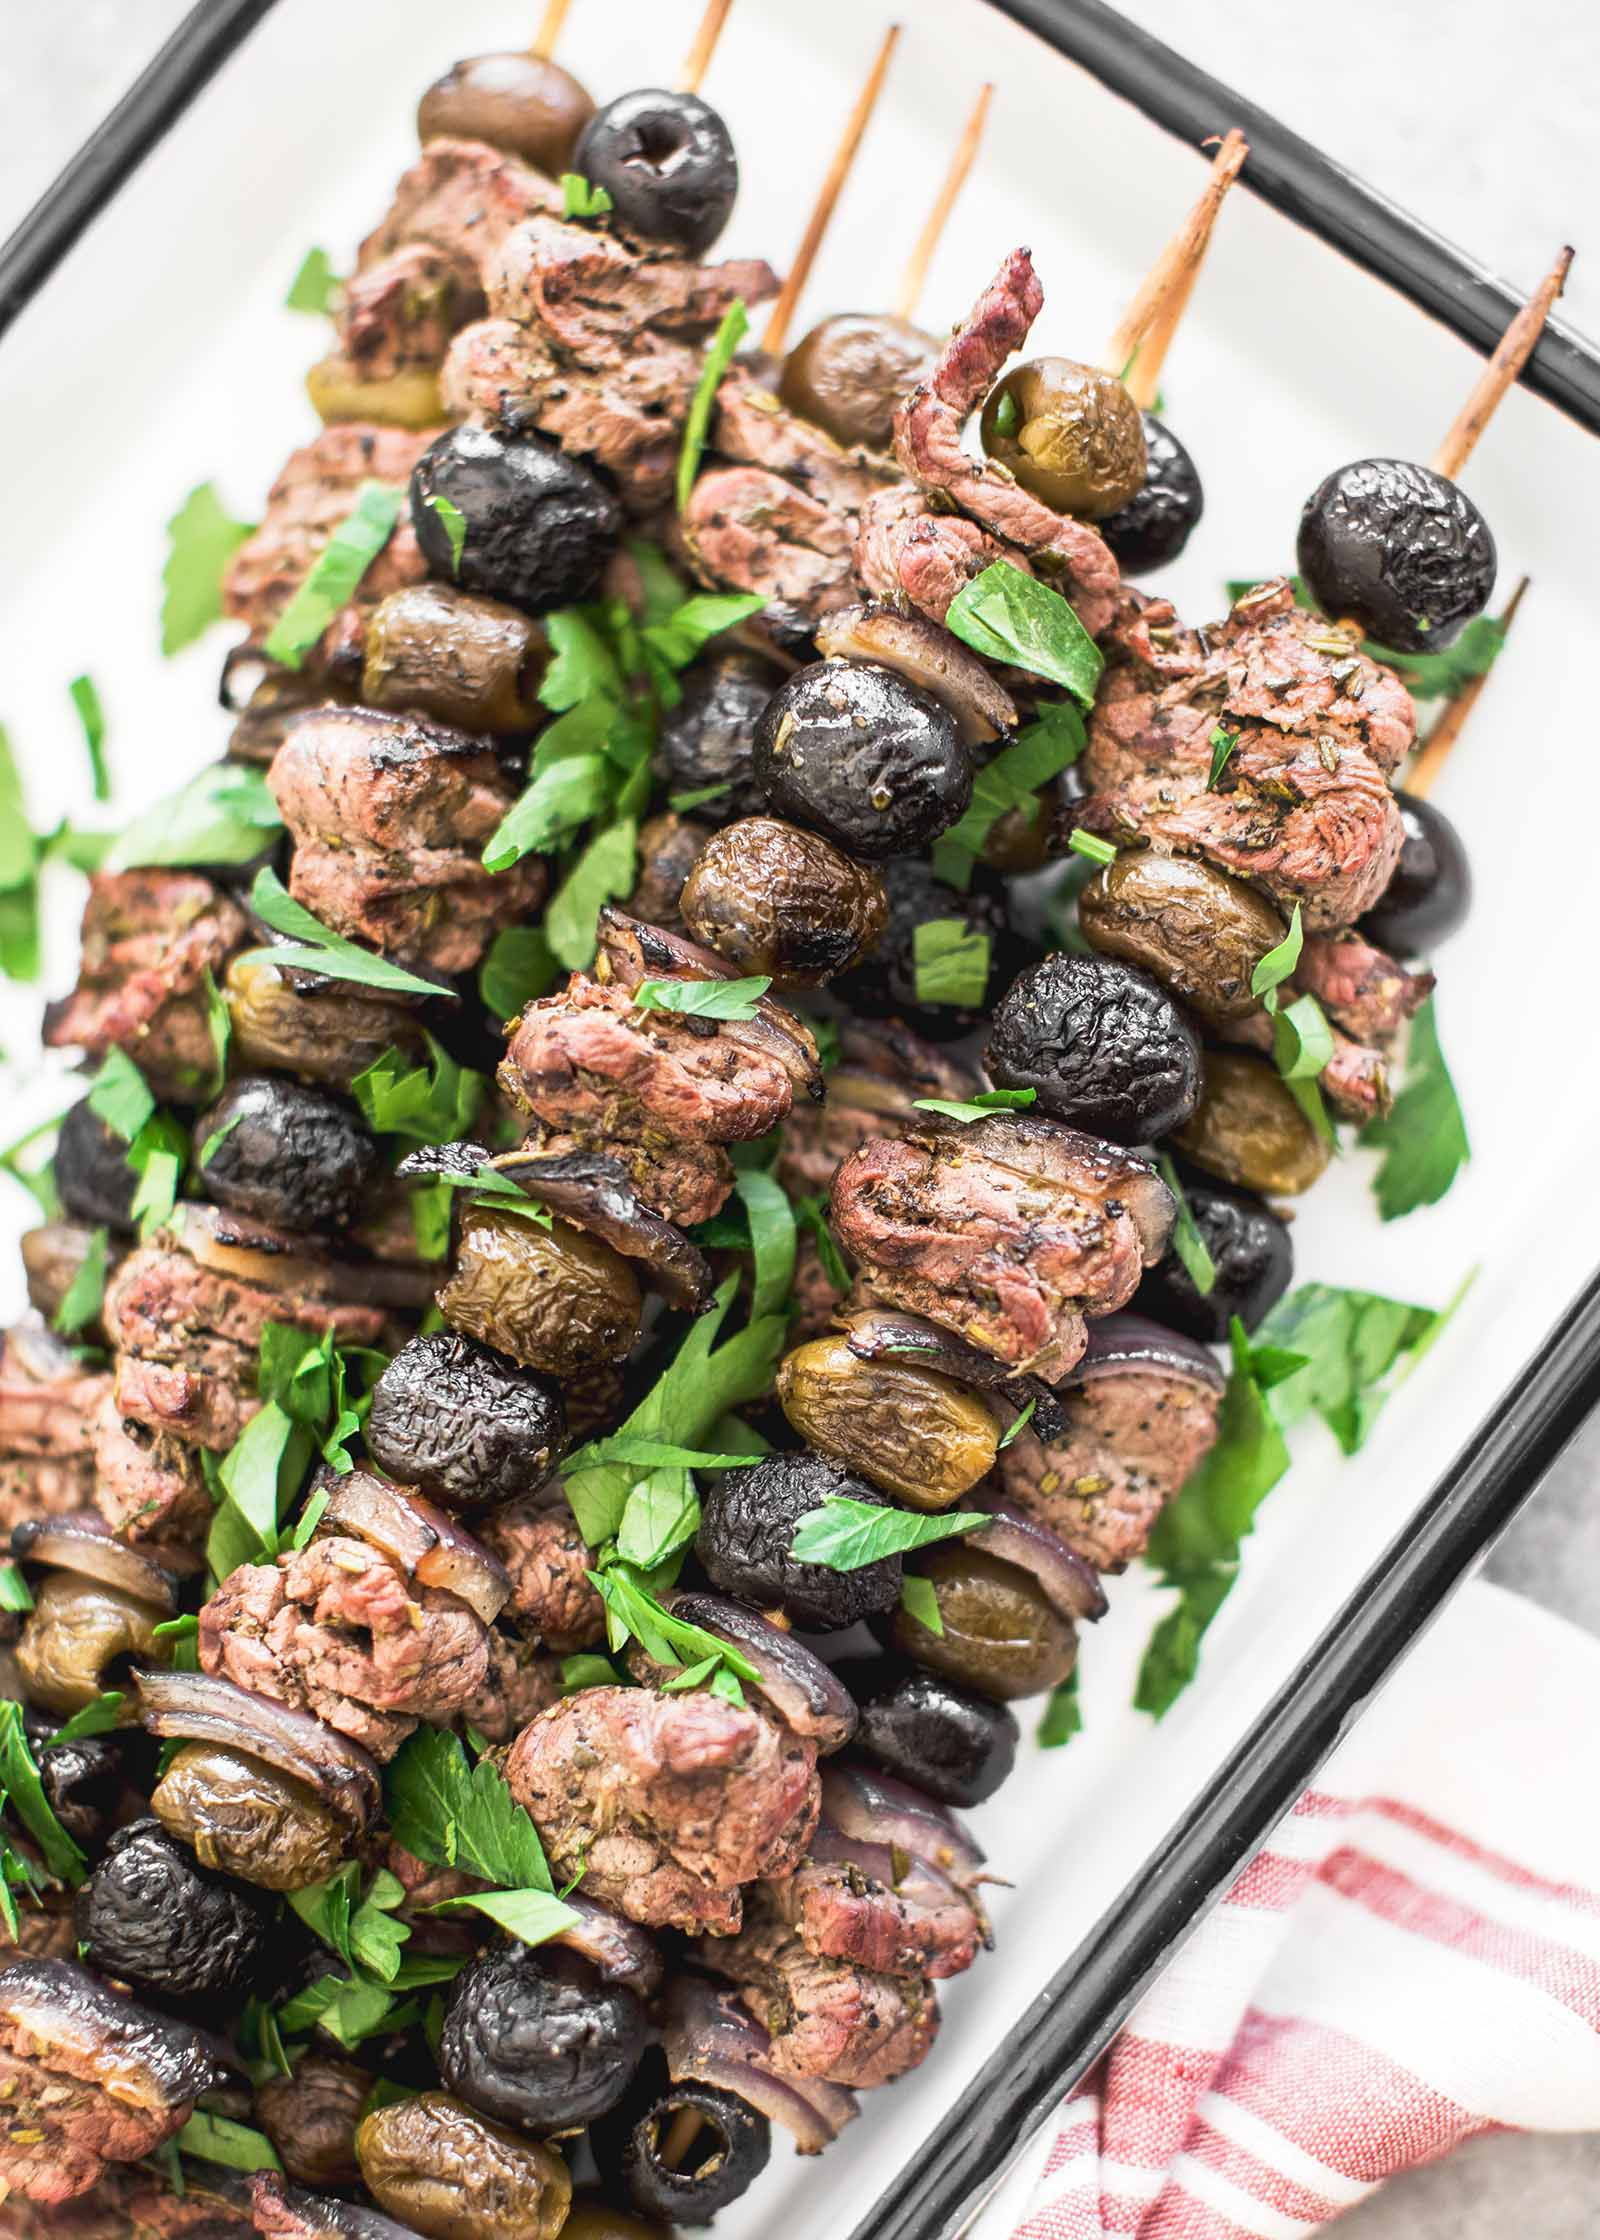 Grilled Steak Kabobs with olives and rosemary on a platter